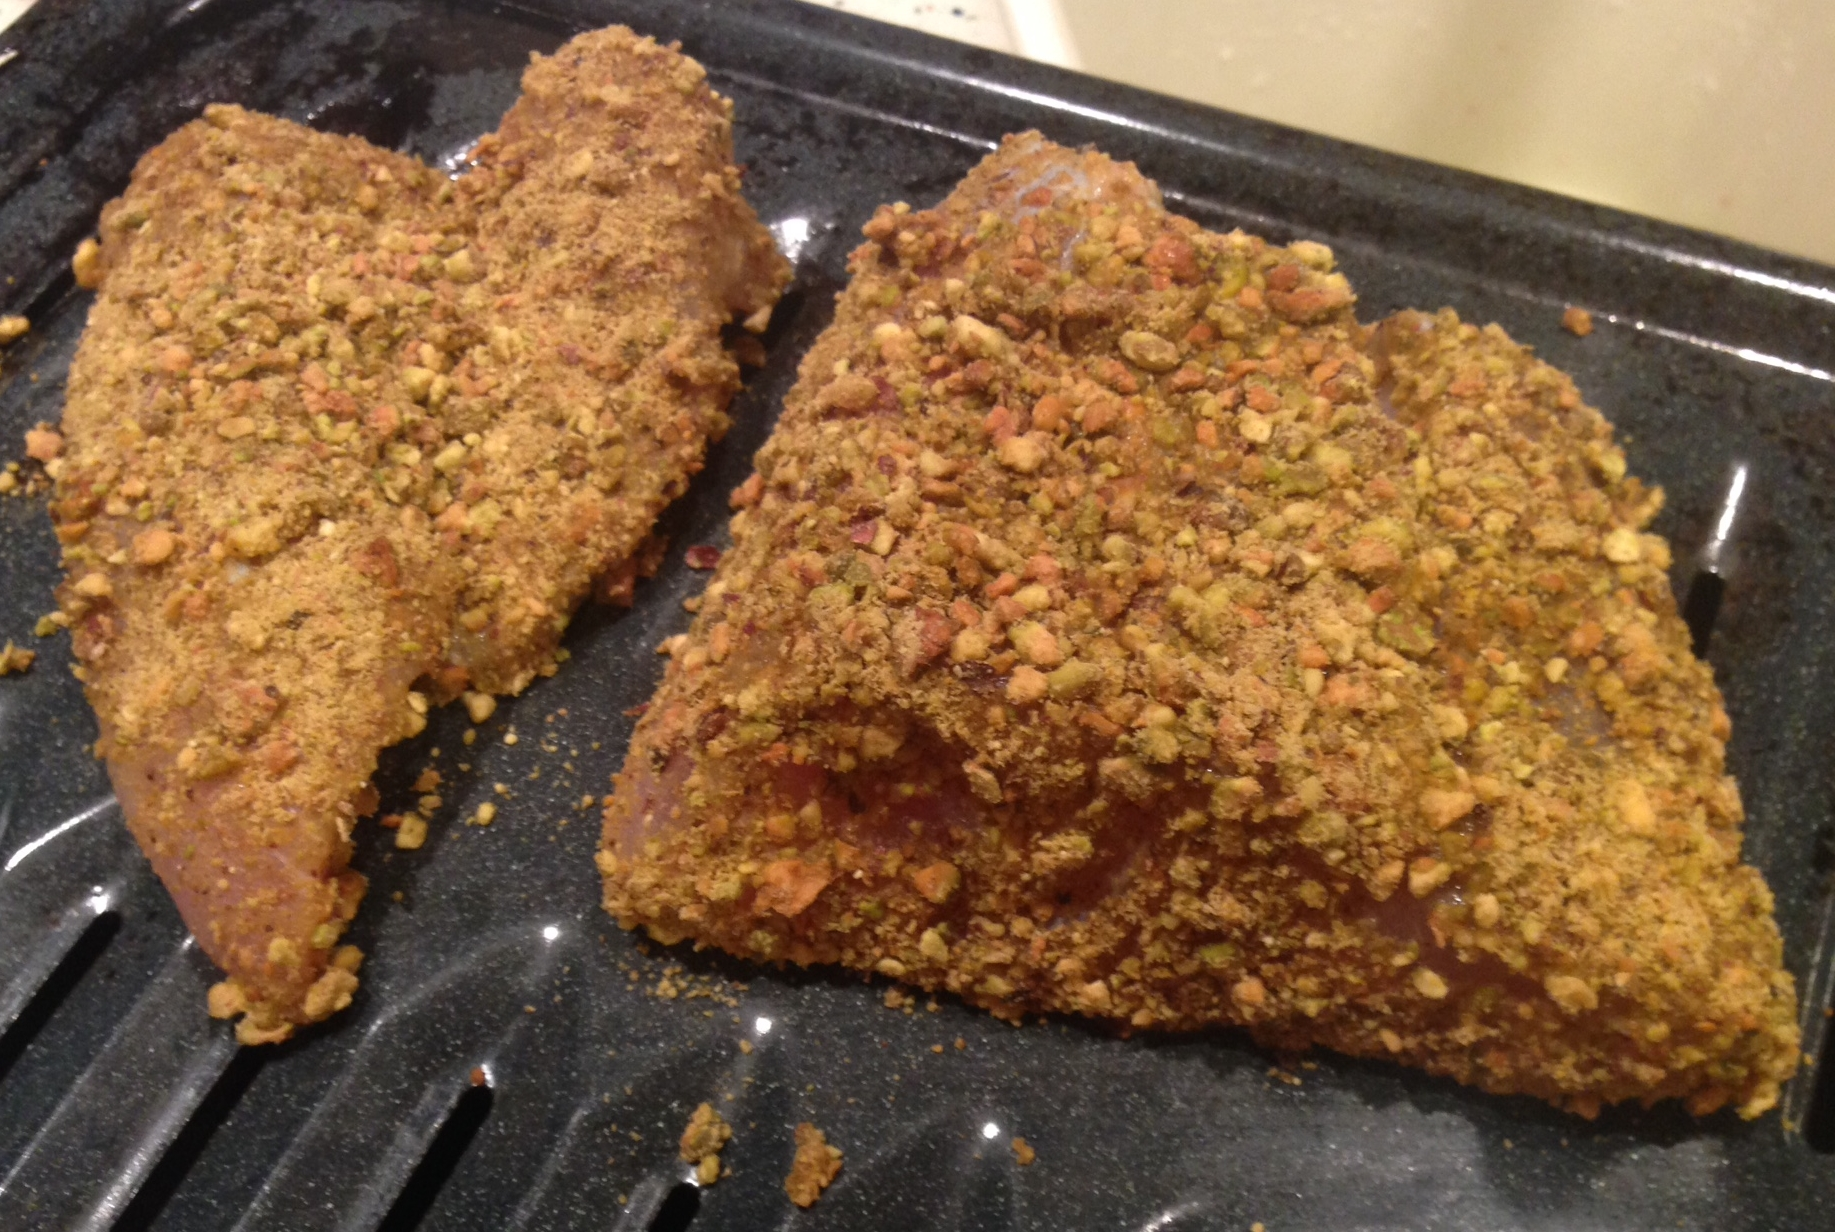 Crusted and Ready for the Oven!